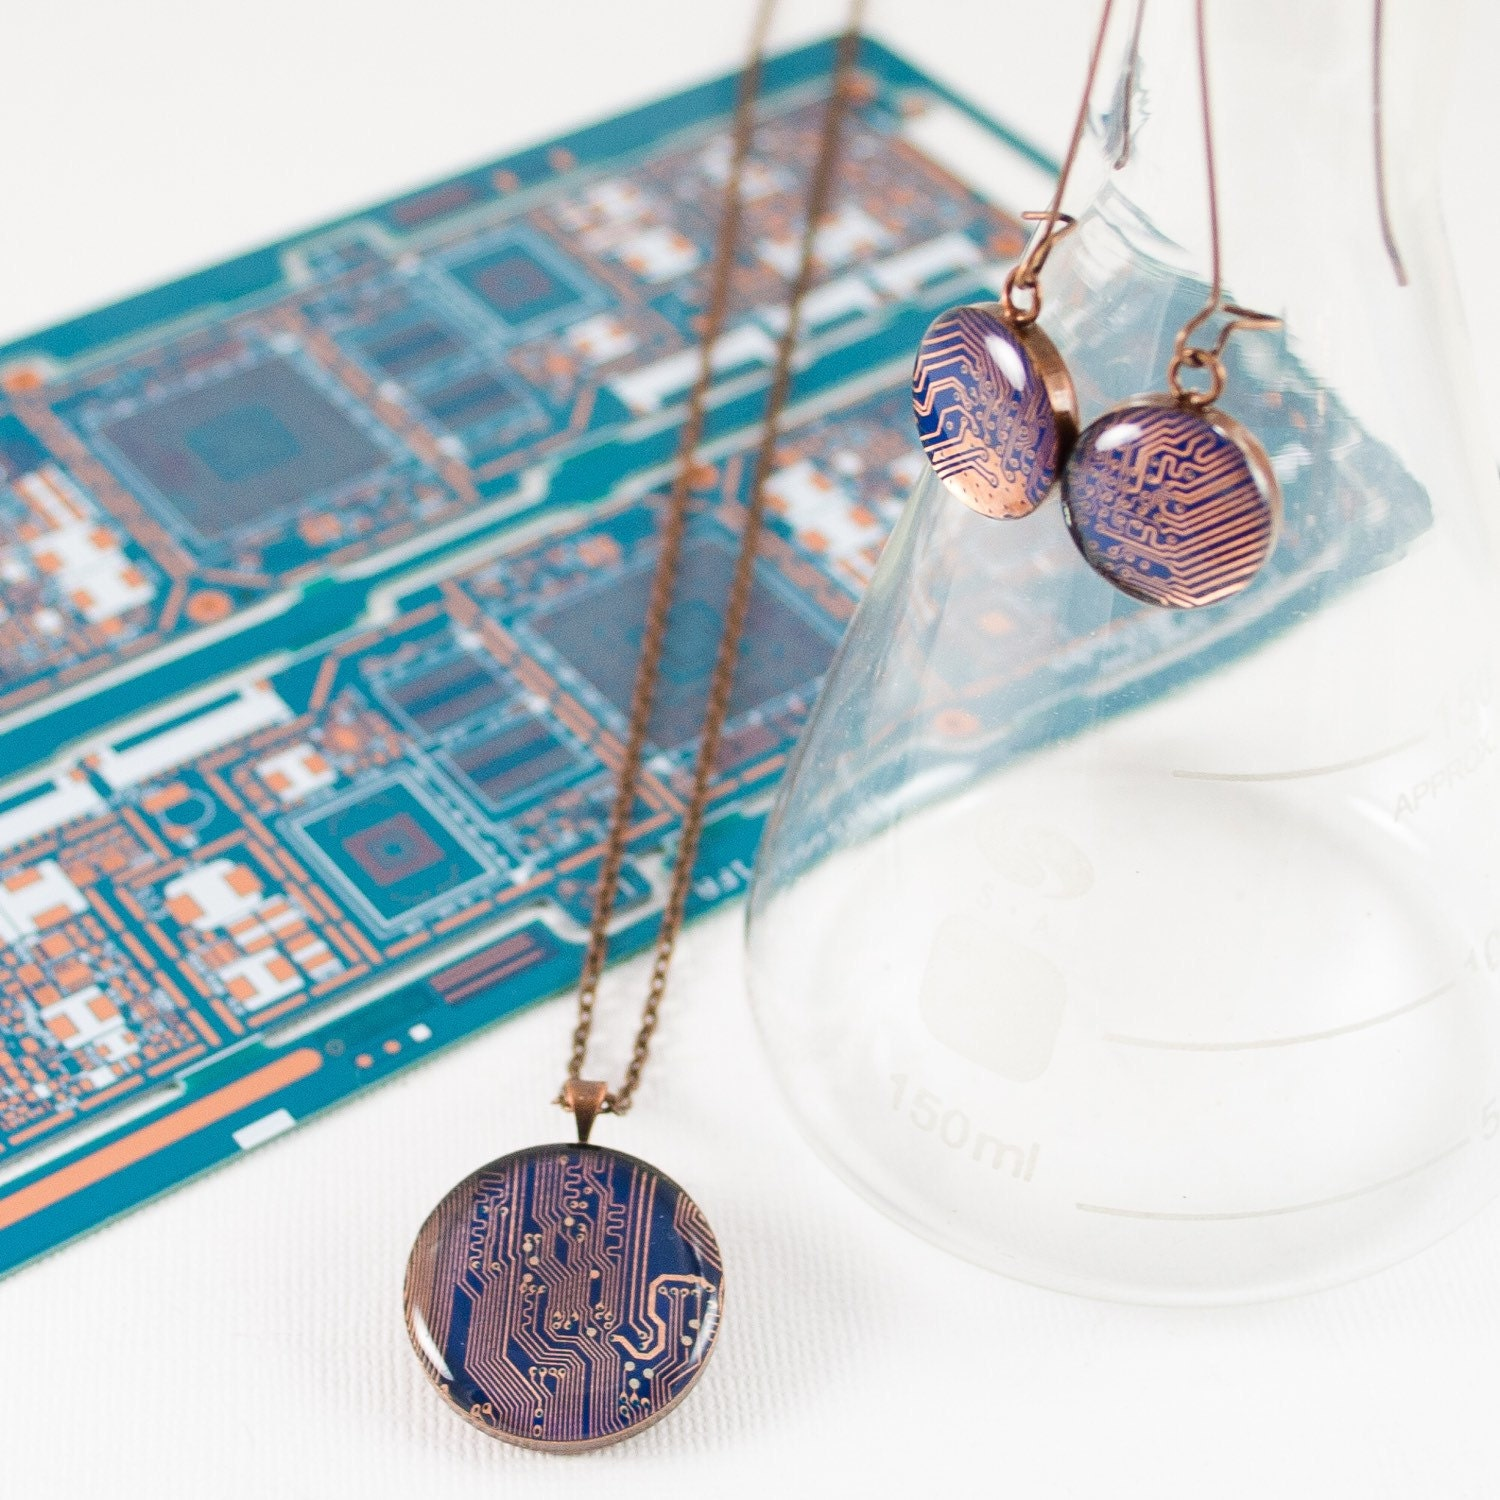 Updates From Circuitbreakerlabs On Etsy Earrings Recycled Circuit Board And Copper Red Glass Beads Geekery Click To View Listing